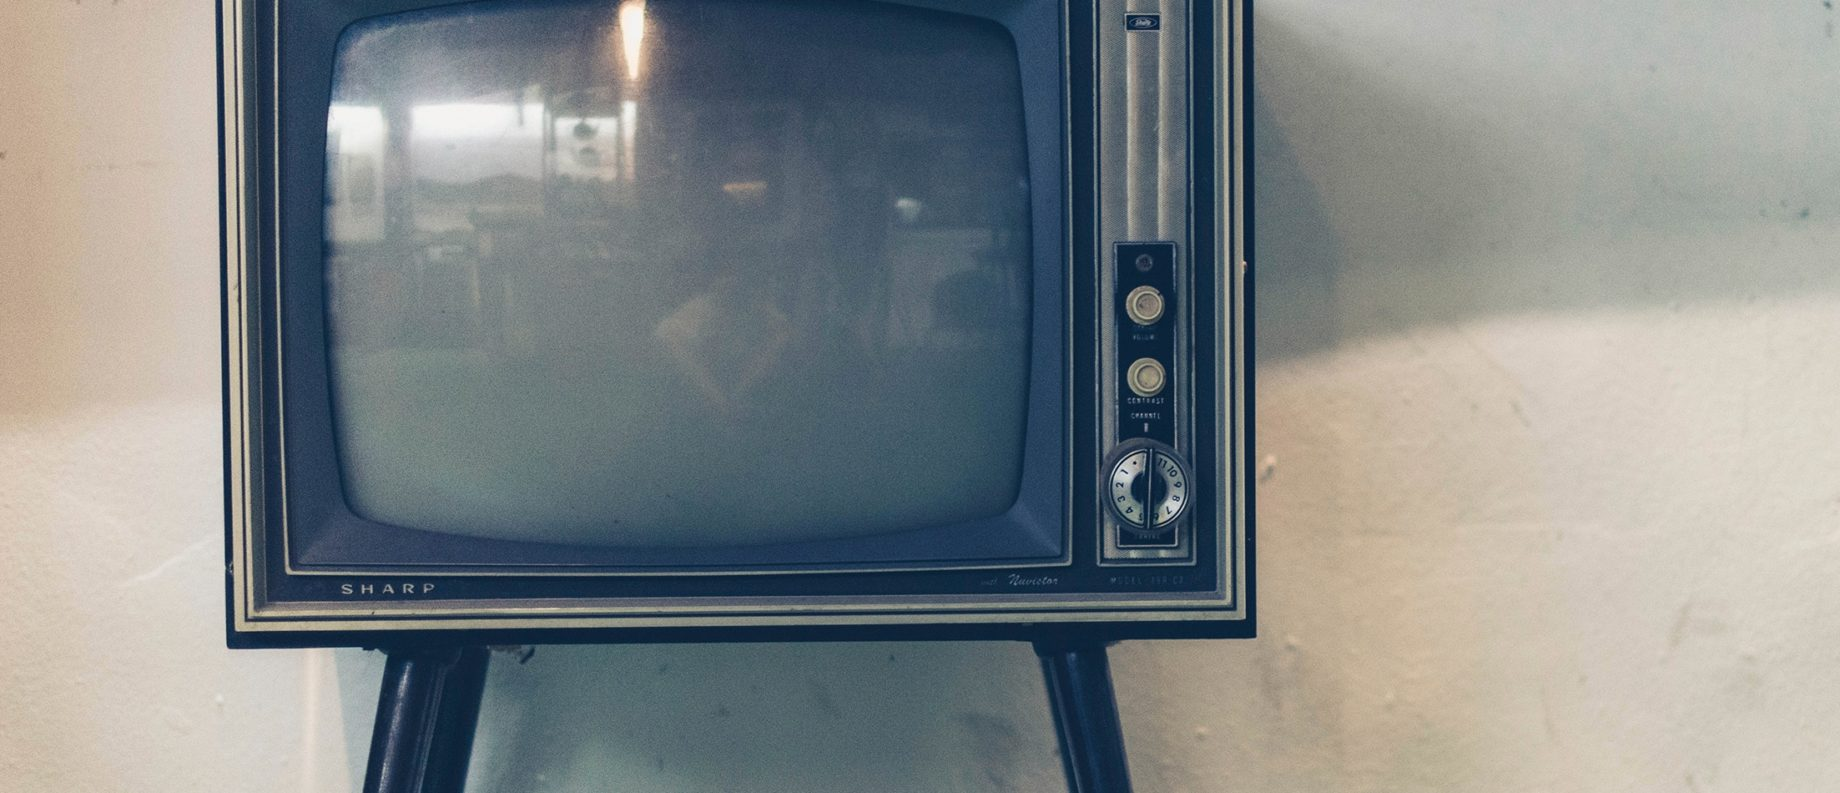 An old television. Photograph.